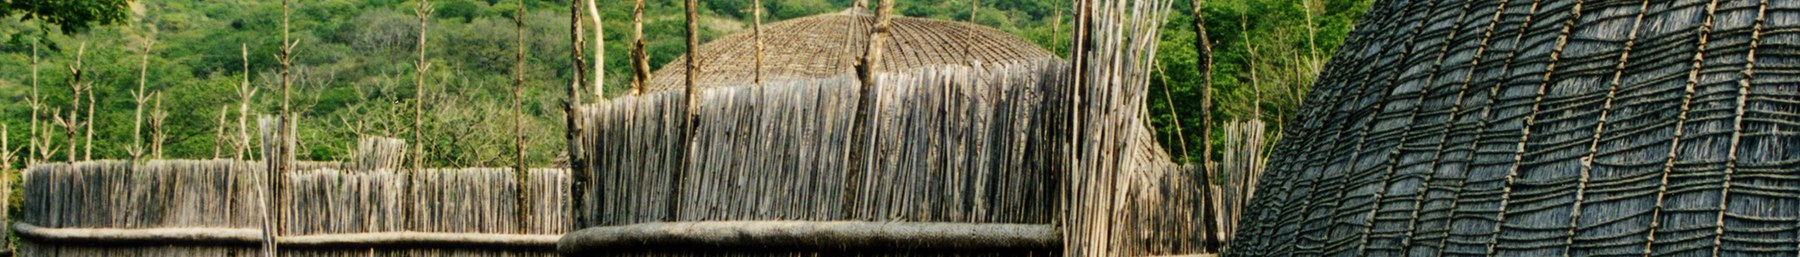 Eswatini banner Traditional houses.jpg